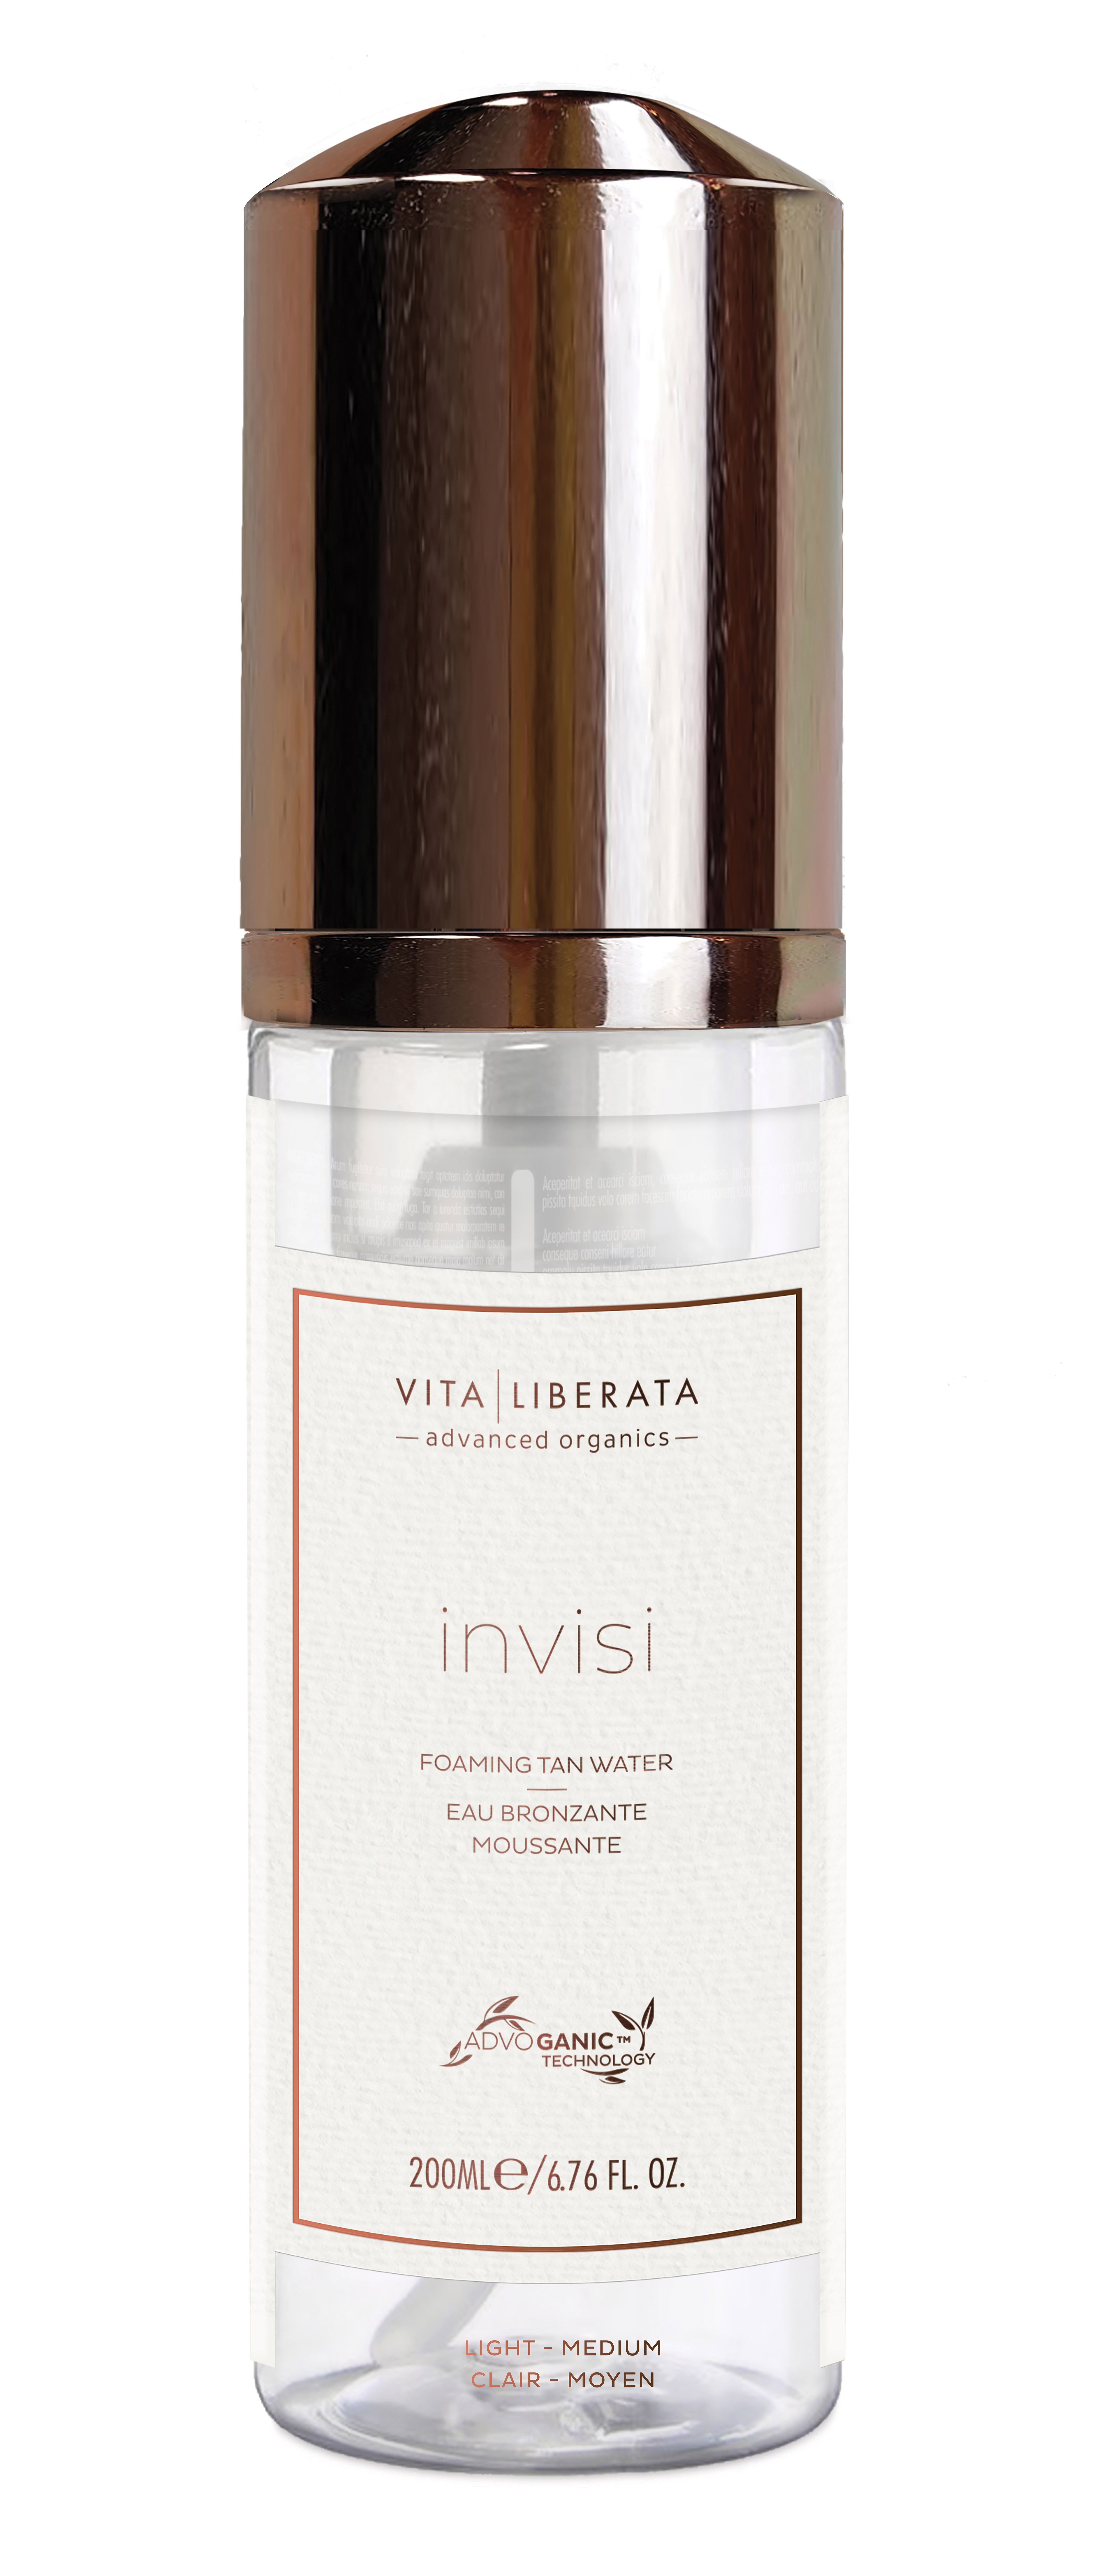 Invisi Foaming Tan Water Vita Liberata Invisi Fo 200 ml